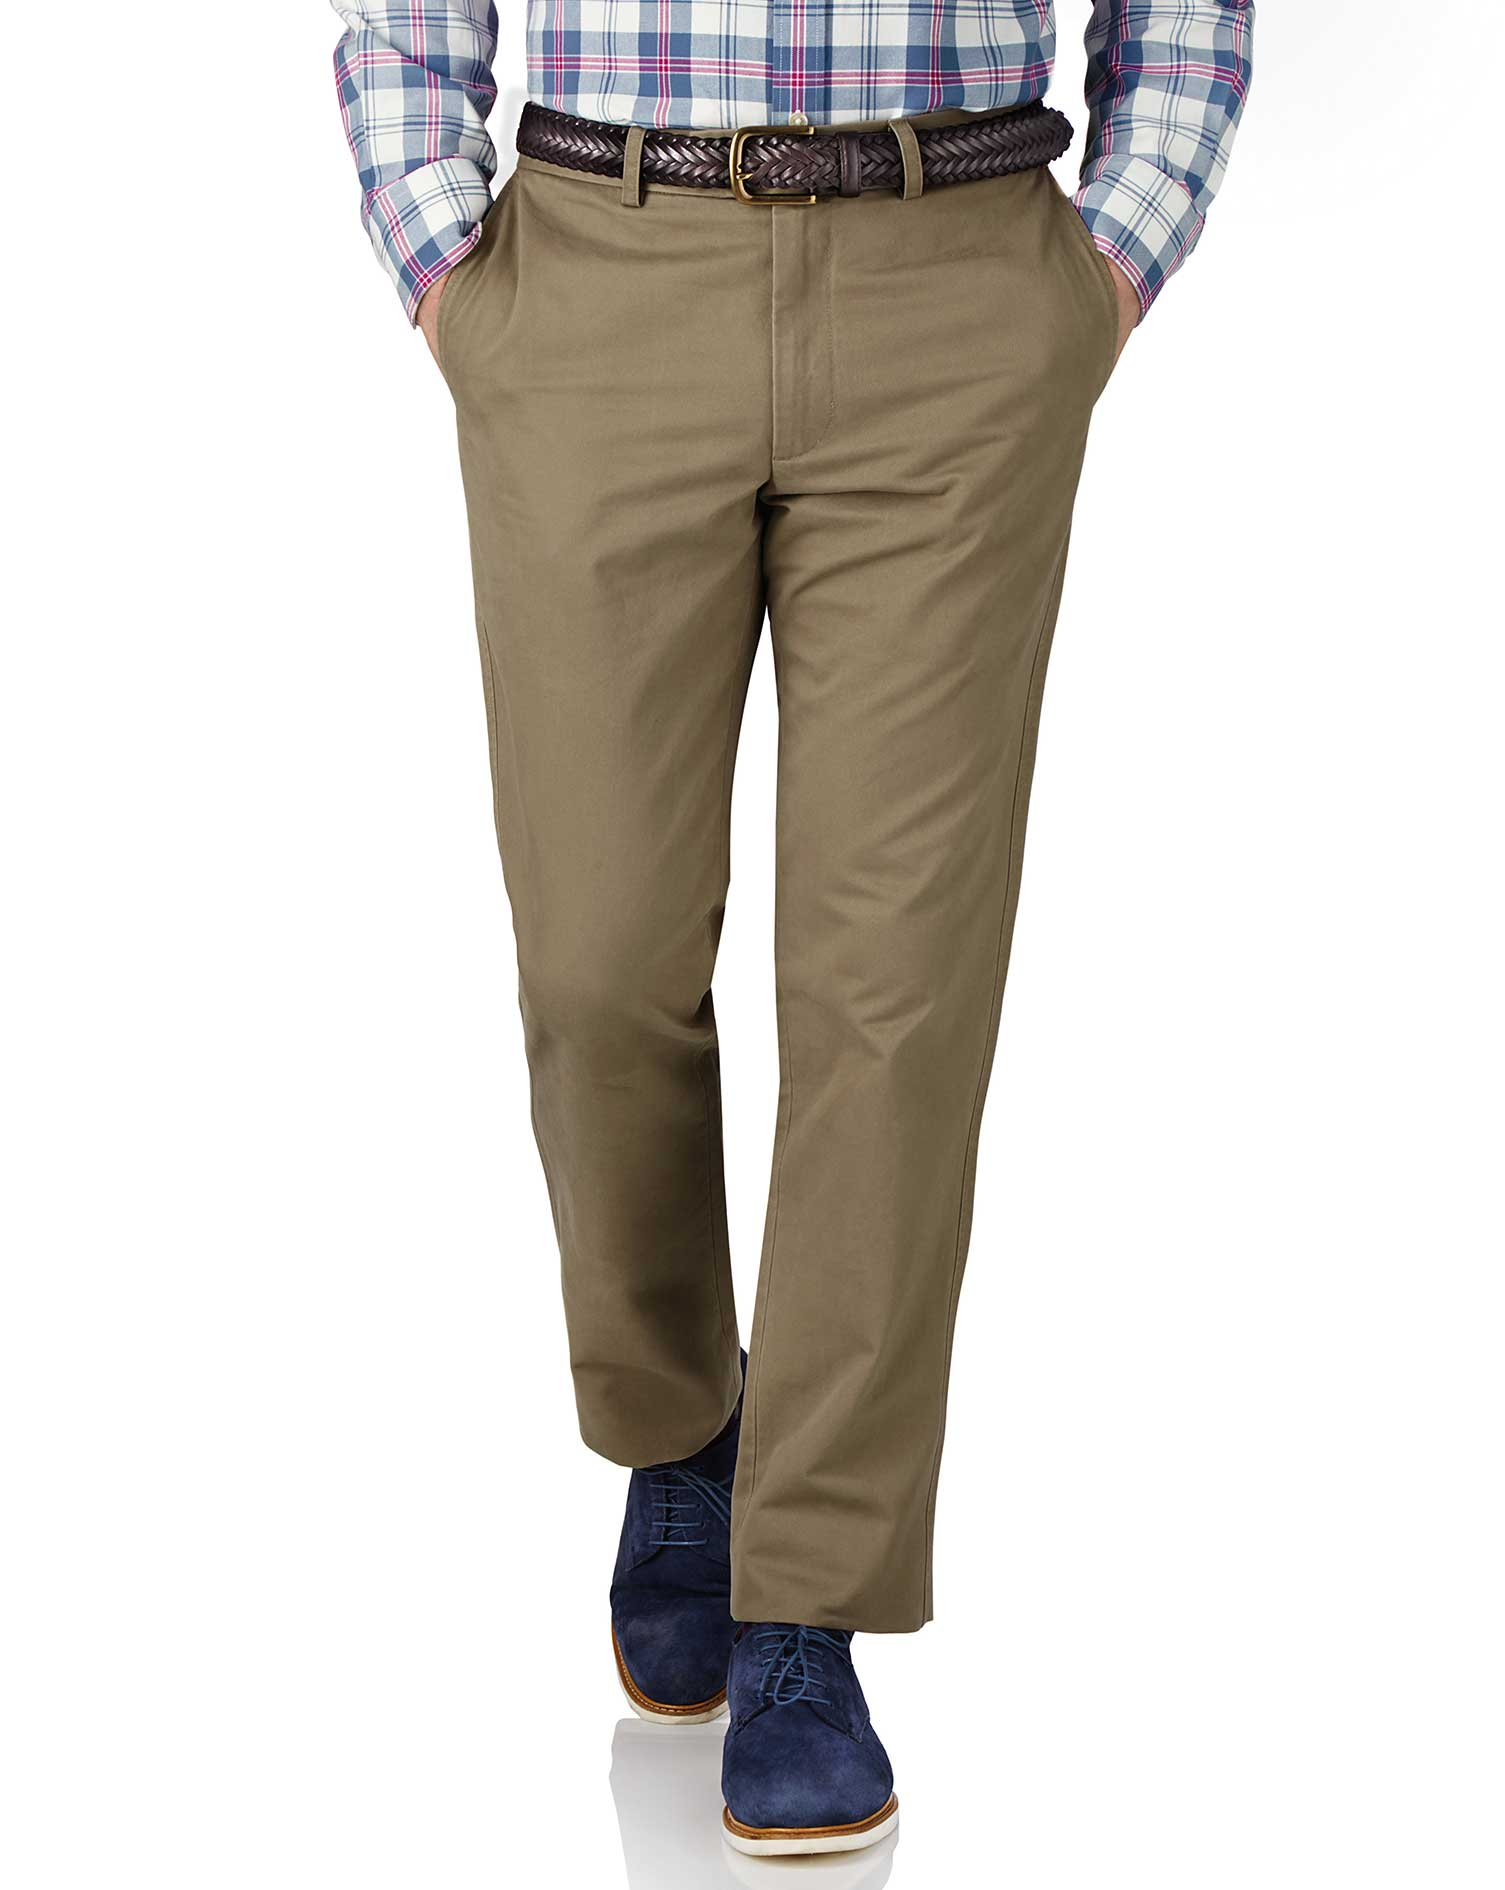 Beige Slim Fit Flat Front Cotton Chino Trousers Size W30 L38 by Charles Tyrwhitt